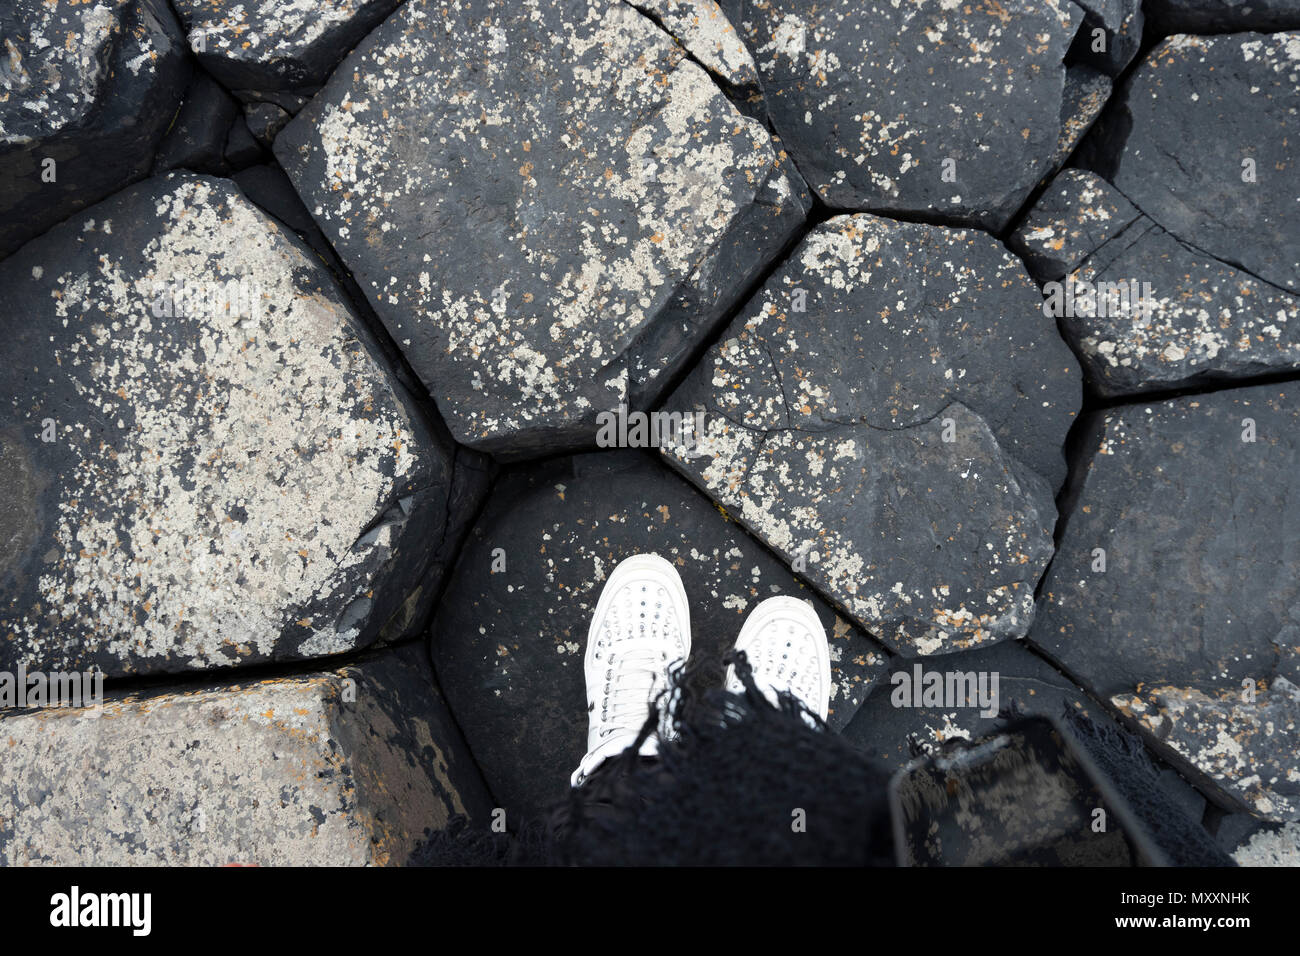 High angle view of legs in white shoes on black basalt stones, Giants Causeway, Northern Ireland - Stock Image